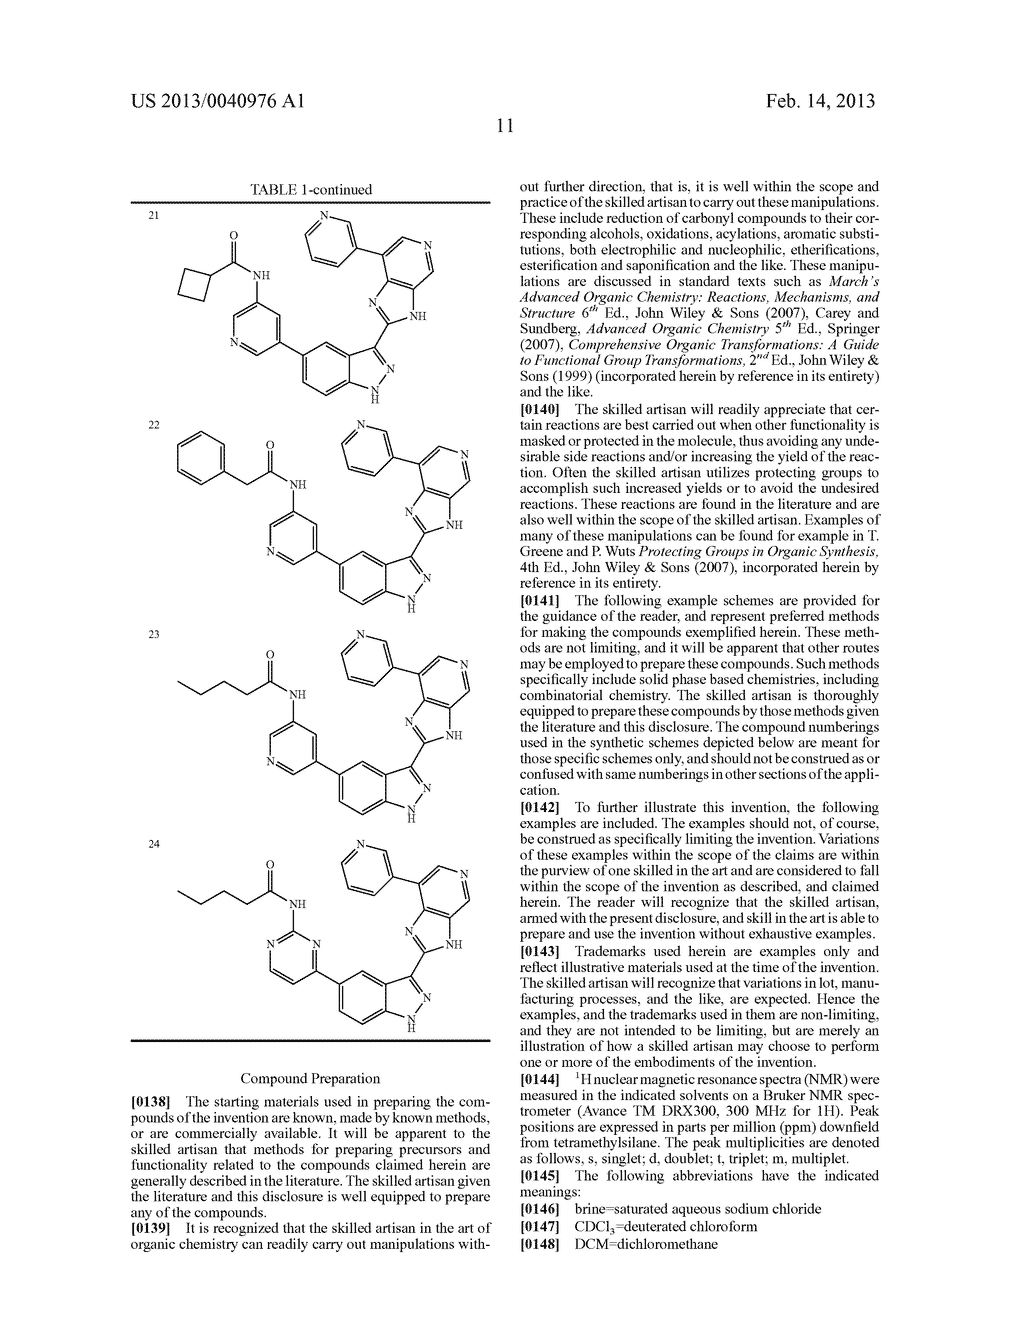 INDAZOLE INHIBITORS OF THE WNT SIGNAL PATHWAY AND THERAPEUTIC USES THEREOF - diagram, schematic, and image 12